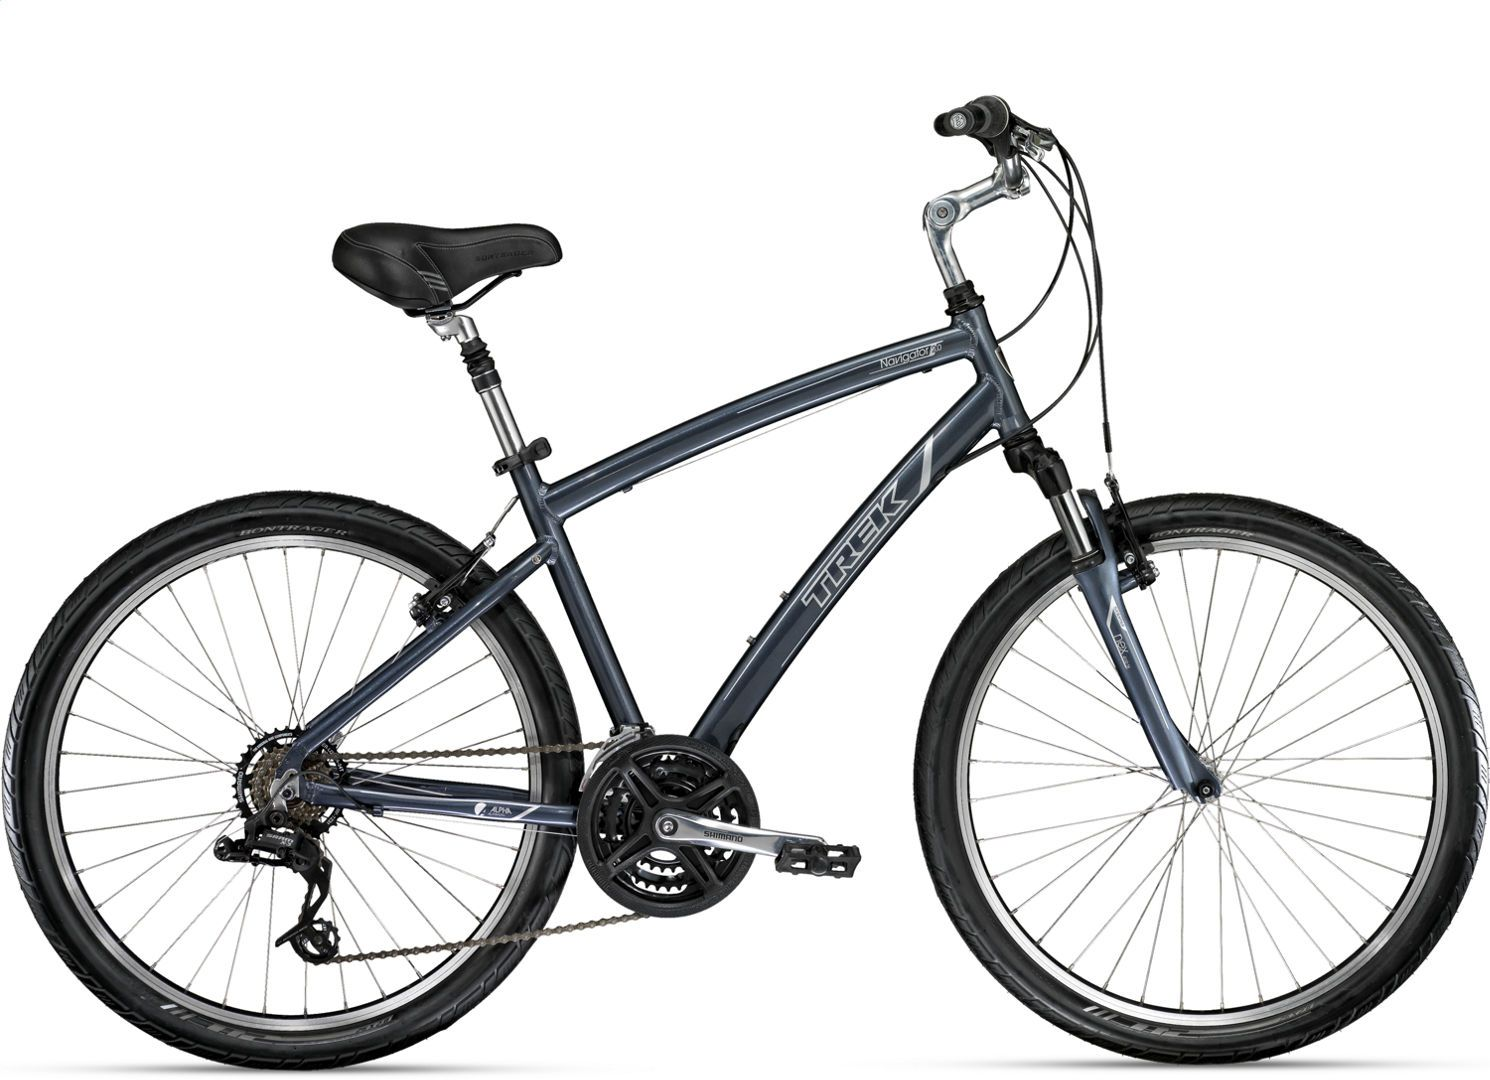 Navigator 2 0 Trek Trek Bicycle Trek Bikes Trek Mountain Bike